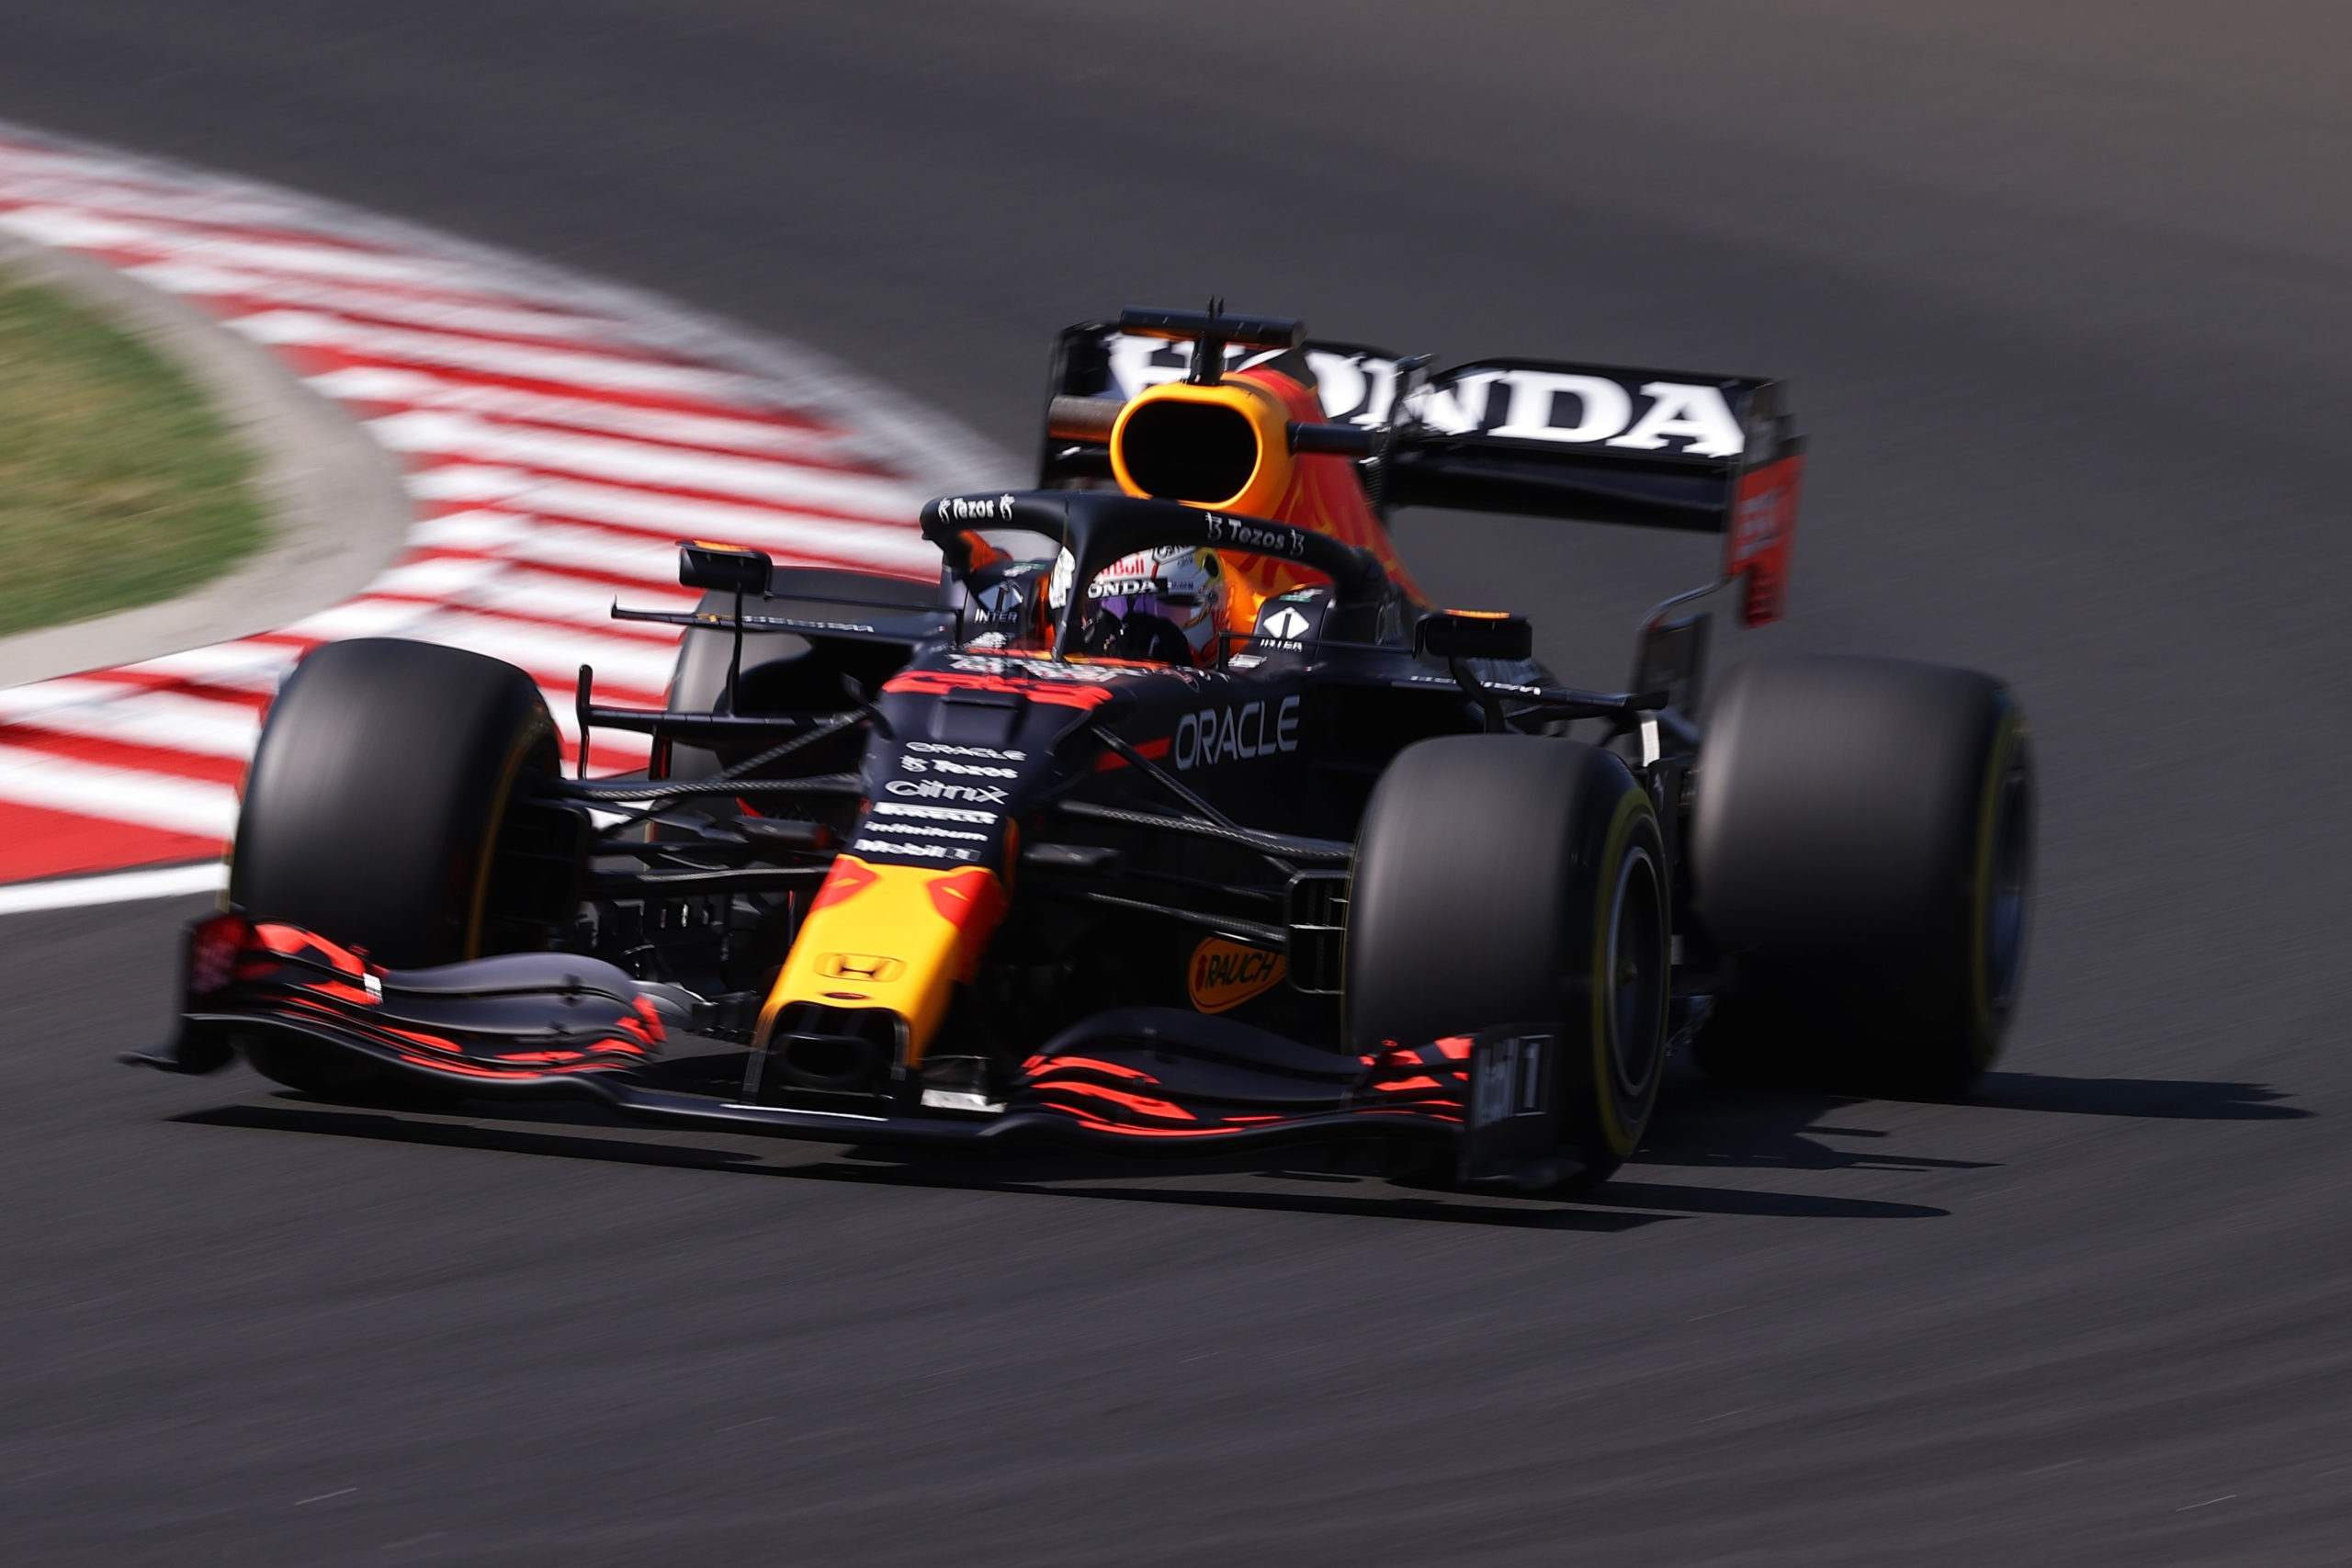 BUDAPEST, HUNGARY - JULY 30: Max Verstappen of the Netherlands driving the (33) Red Bull Racing RB16B Honda during practice ahead of the F1 Grand Prix of Hungary at Hungaroring on July 30, 2021 in Budapest, Hungary. (Photo by Lars Baron/Getty Images) // Getty Images / Red Bull Content Pool  // SI202107300259 // Usage for editorial use only //